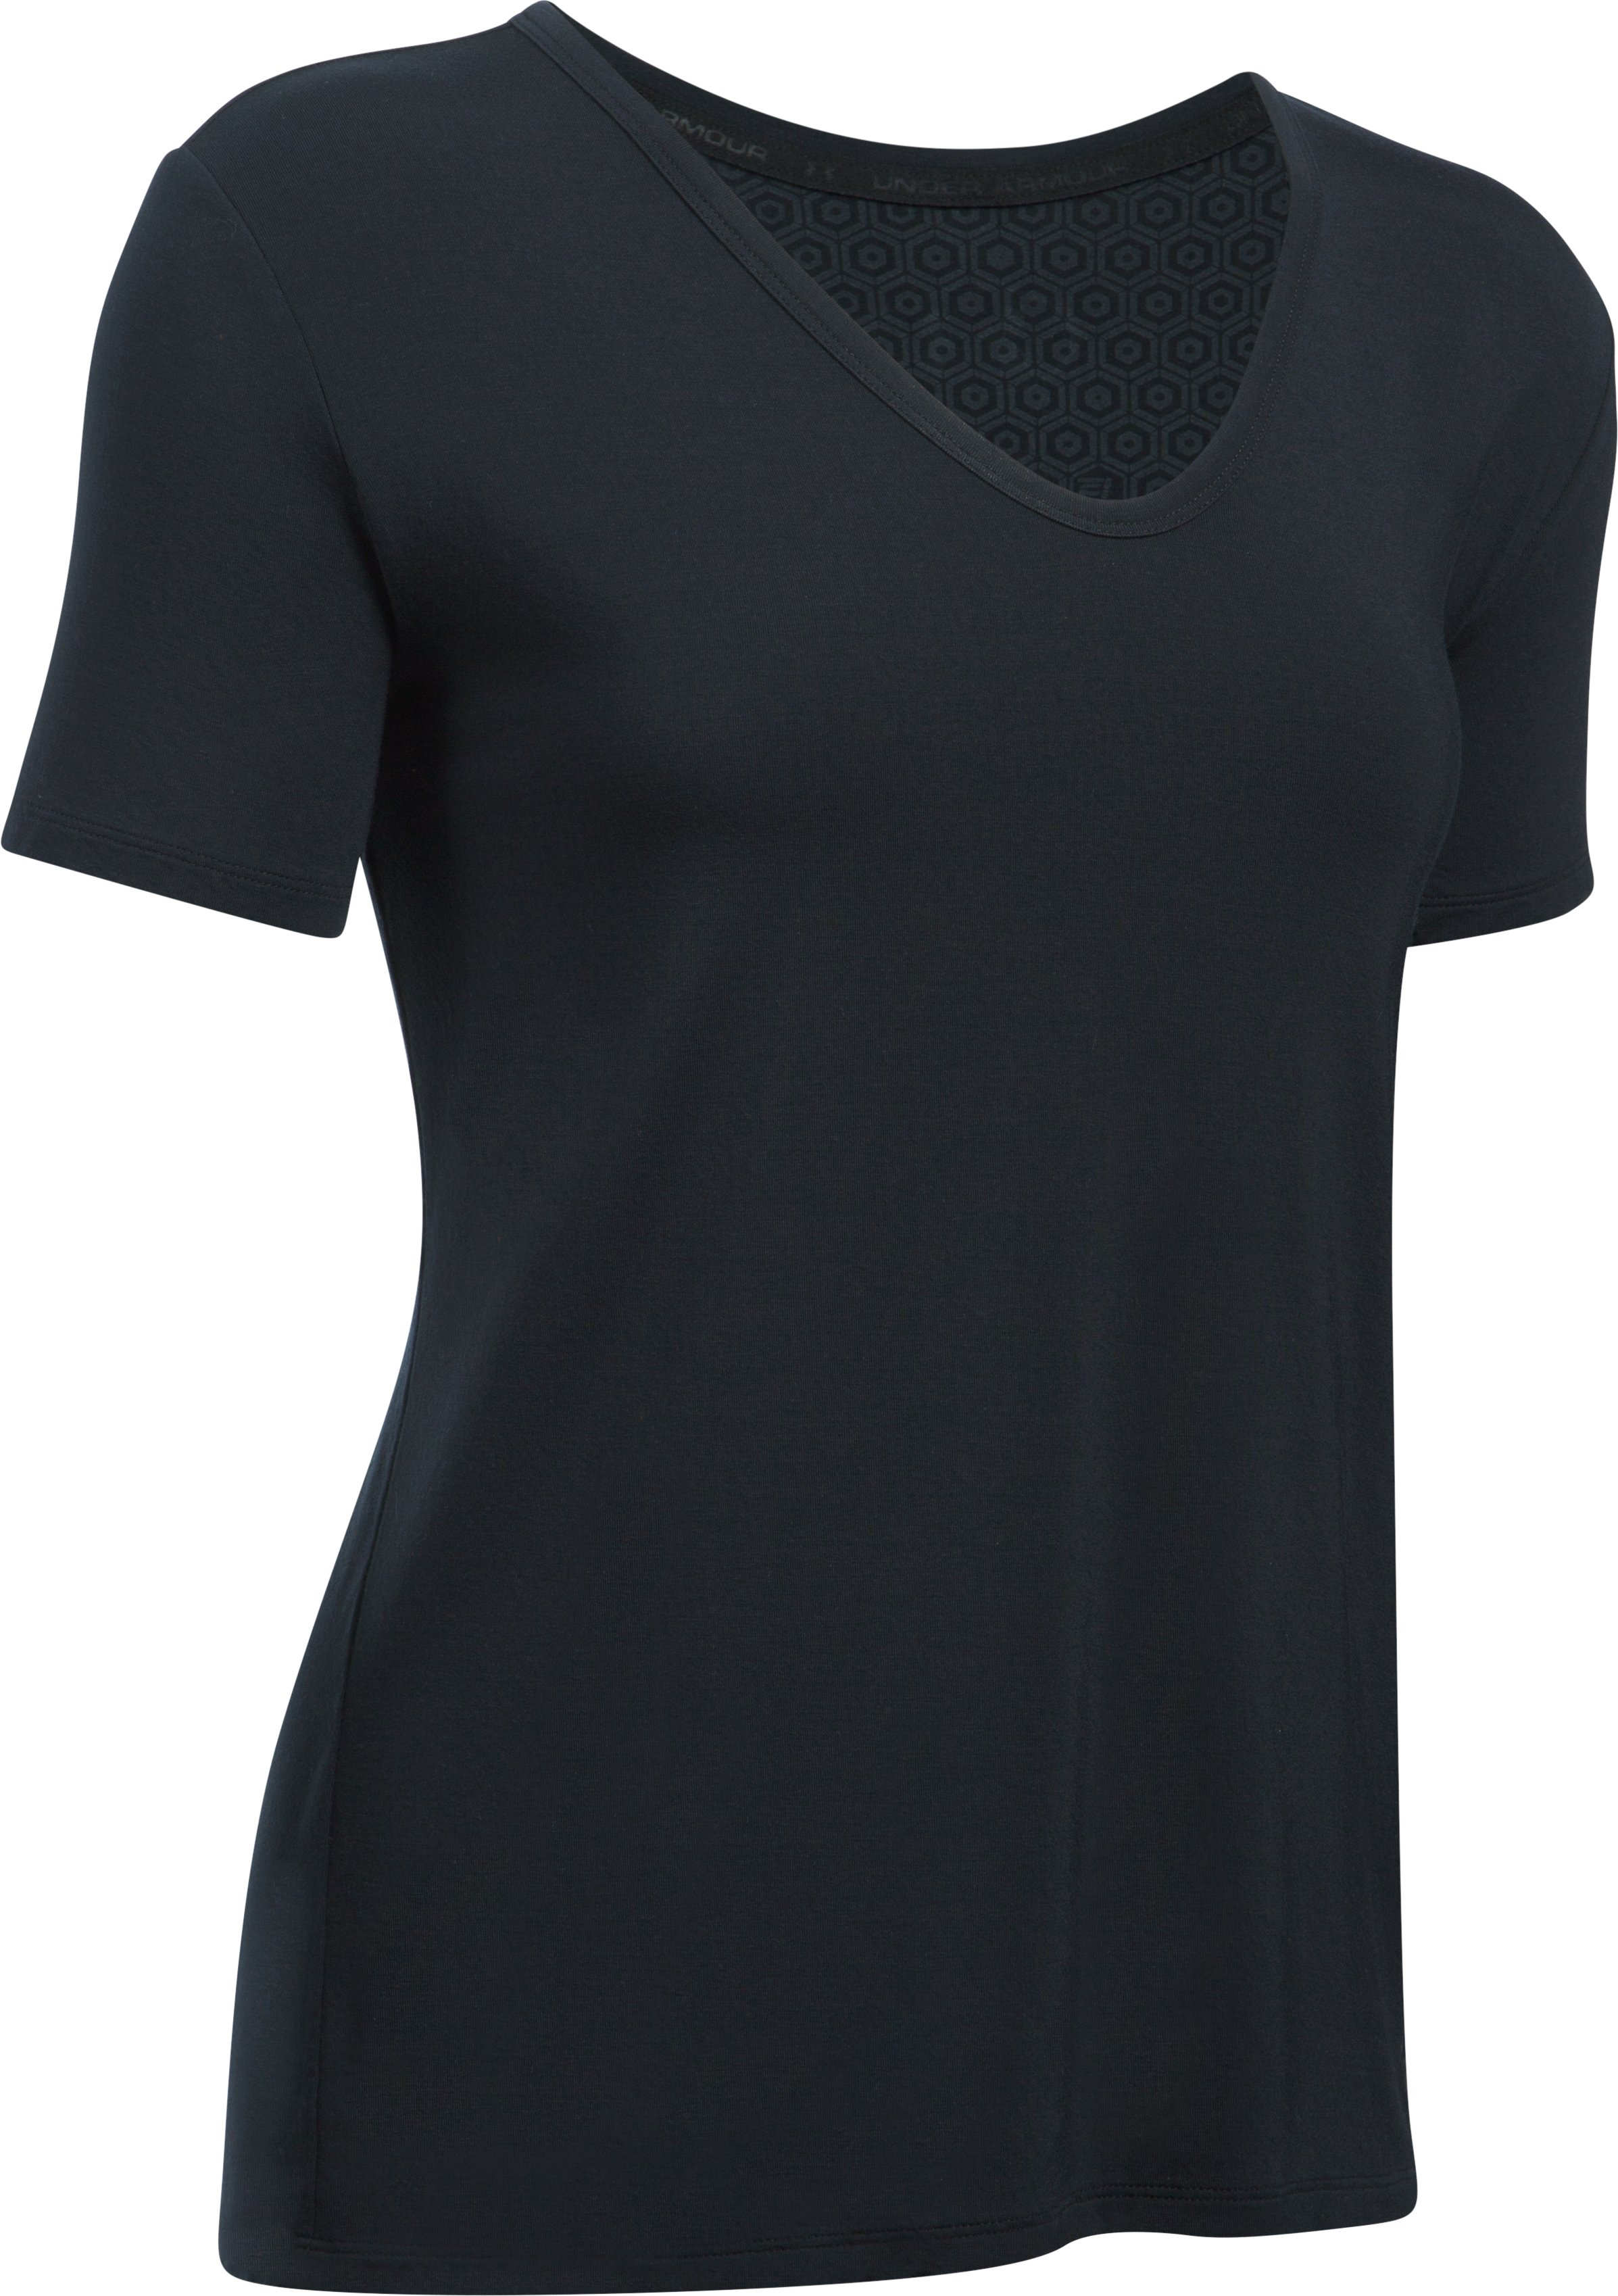 Women's Athlete Recovery Ultra Comfort Sleepwear Short Sleeve, Black ,